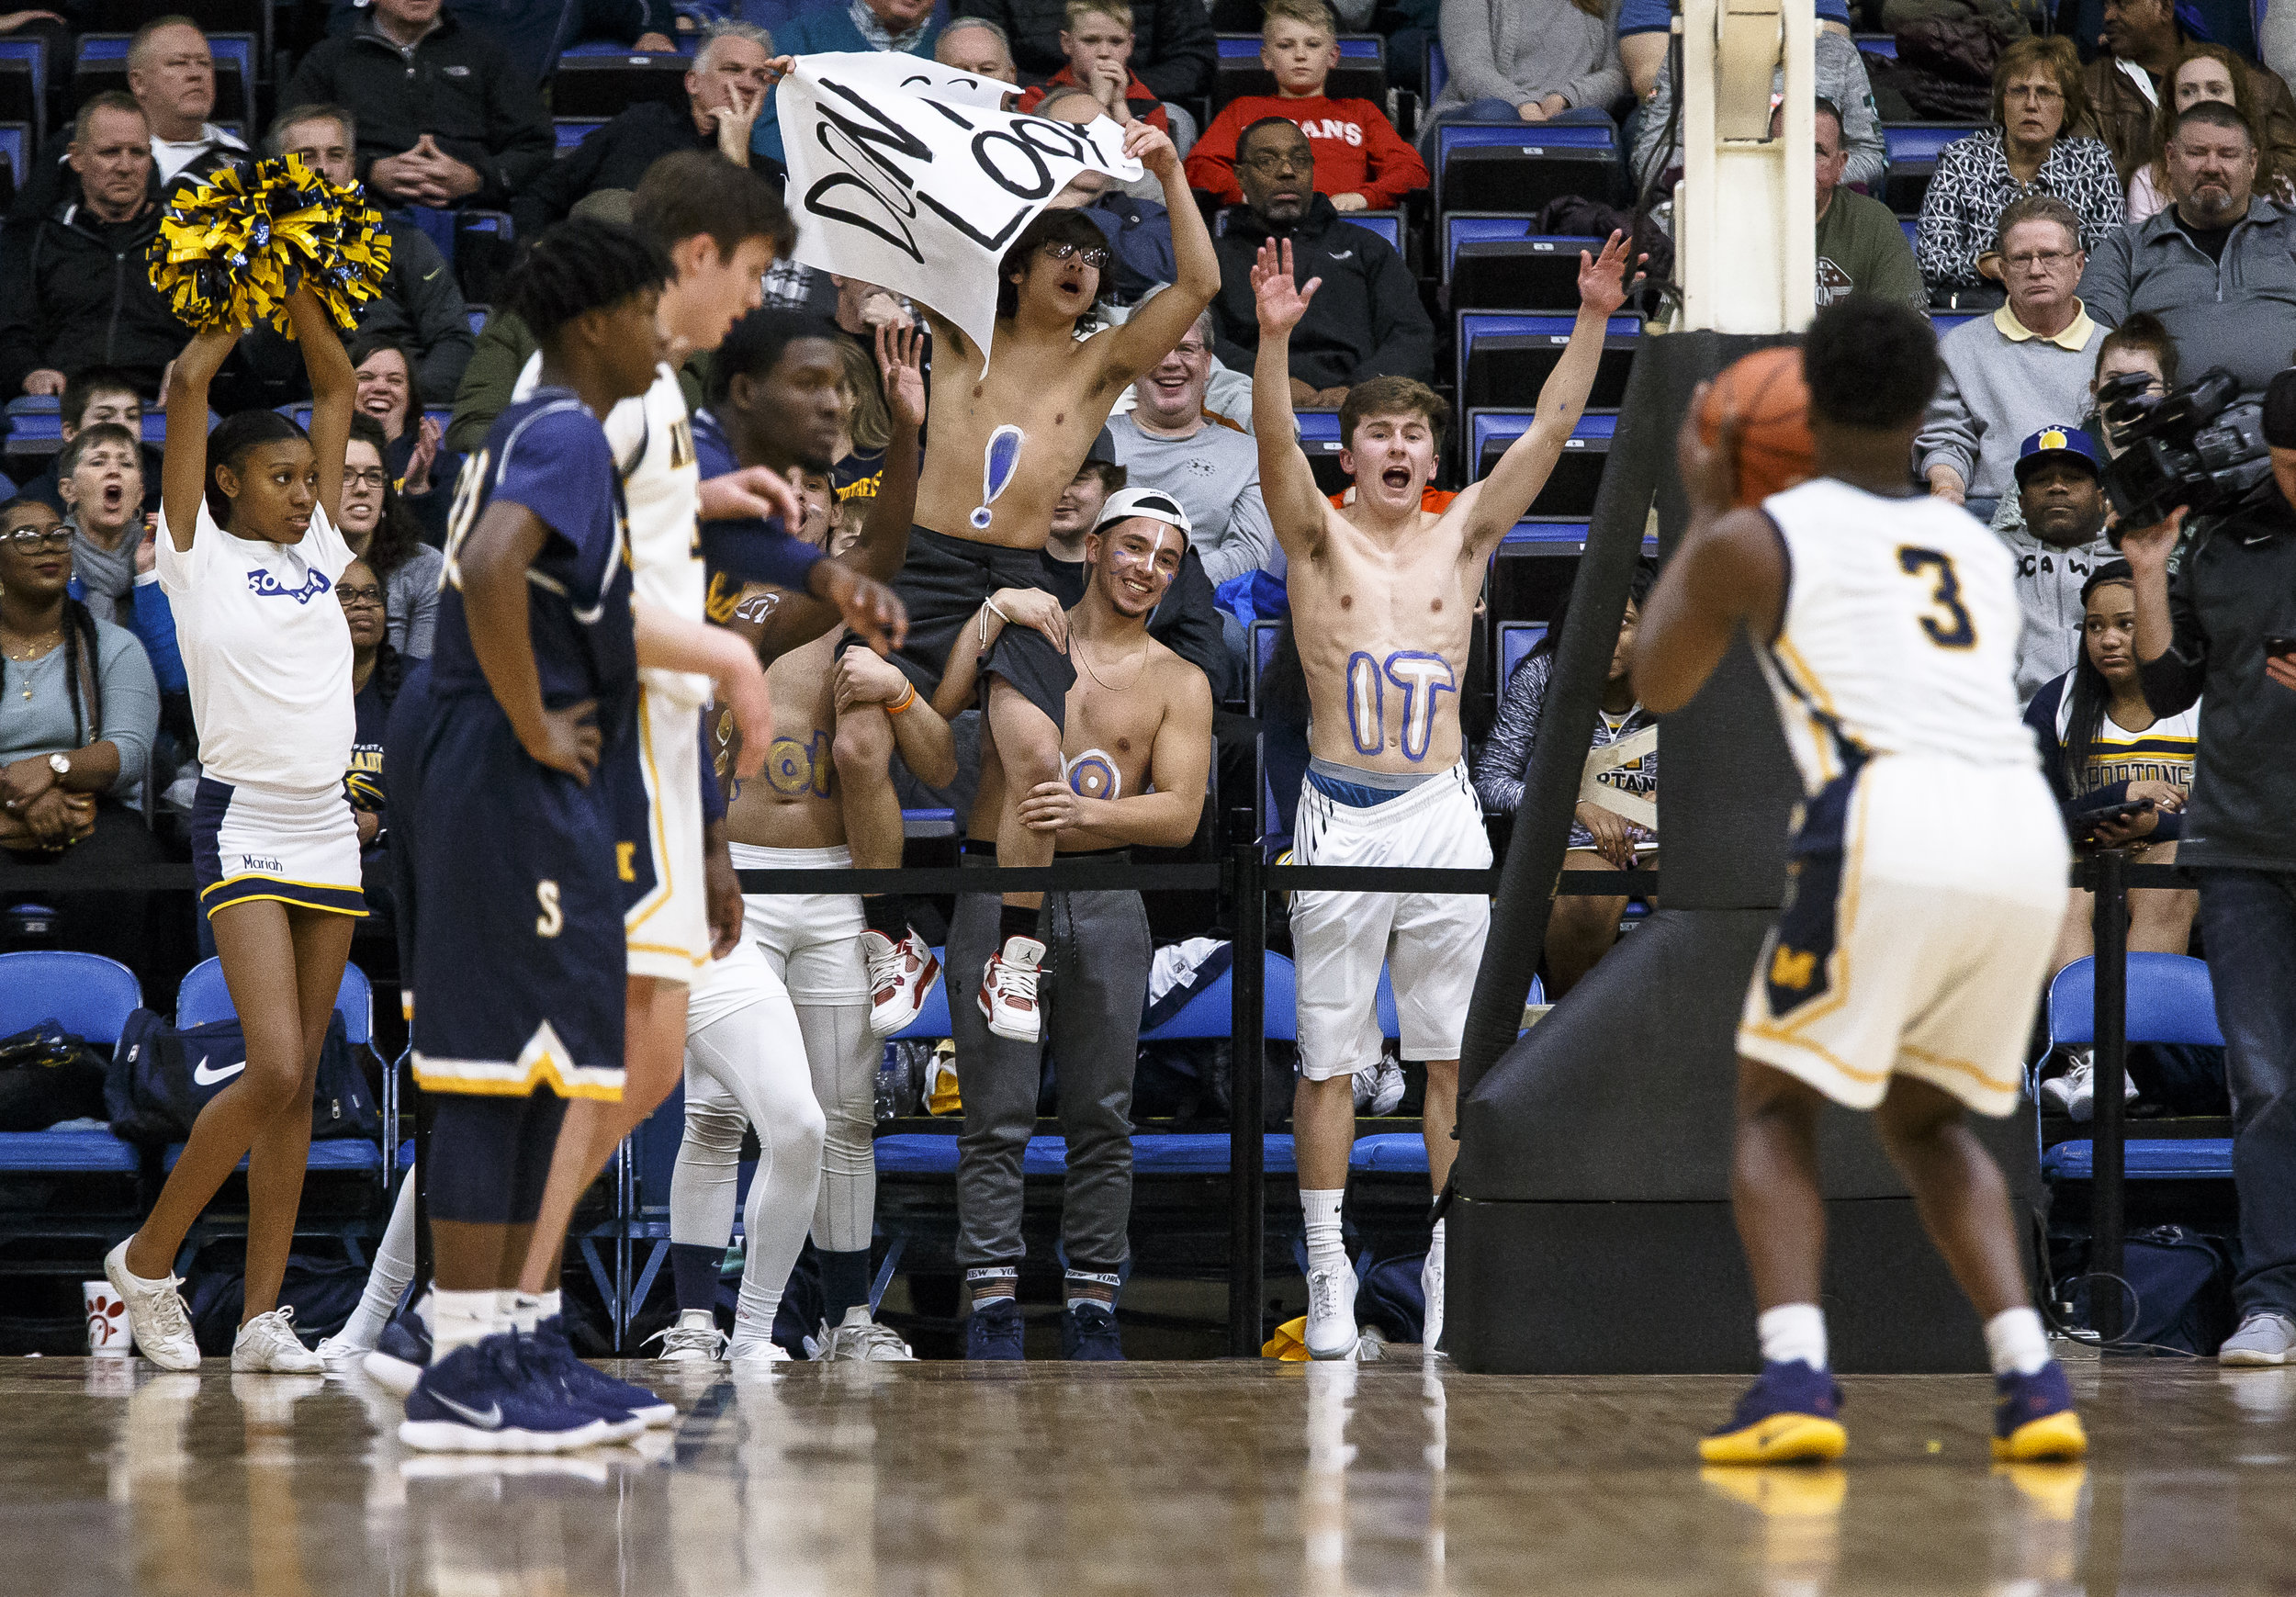 Southeast fans do their best to distract Marion's Jaden Lacy (3) as he shoots free throws in the first half during the Class 3A Springfield Supersectional at the Bank of Springfield Center, Tuesday, March 13, 2018, in Springfield, Ill. [Justin L. Fowler/The State Journal-Register]